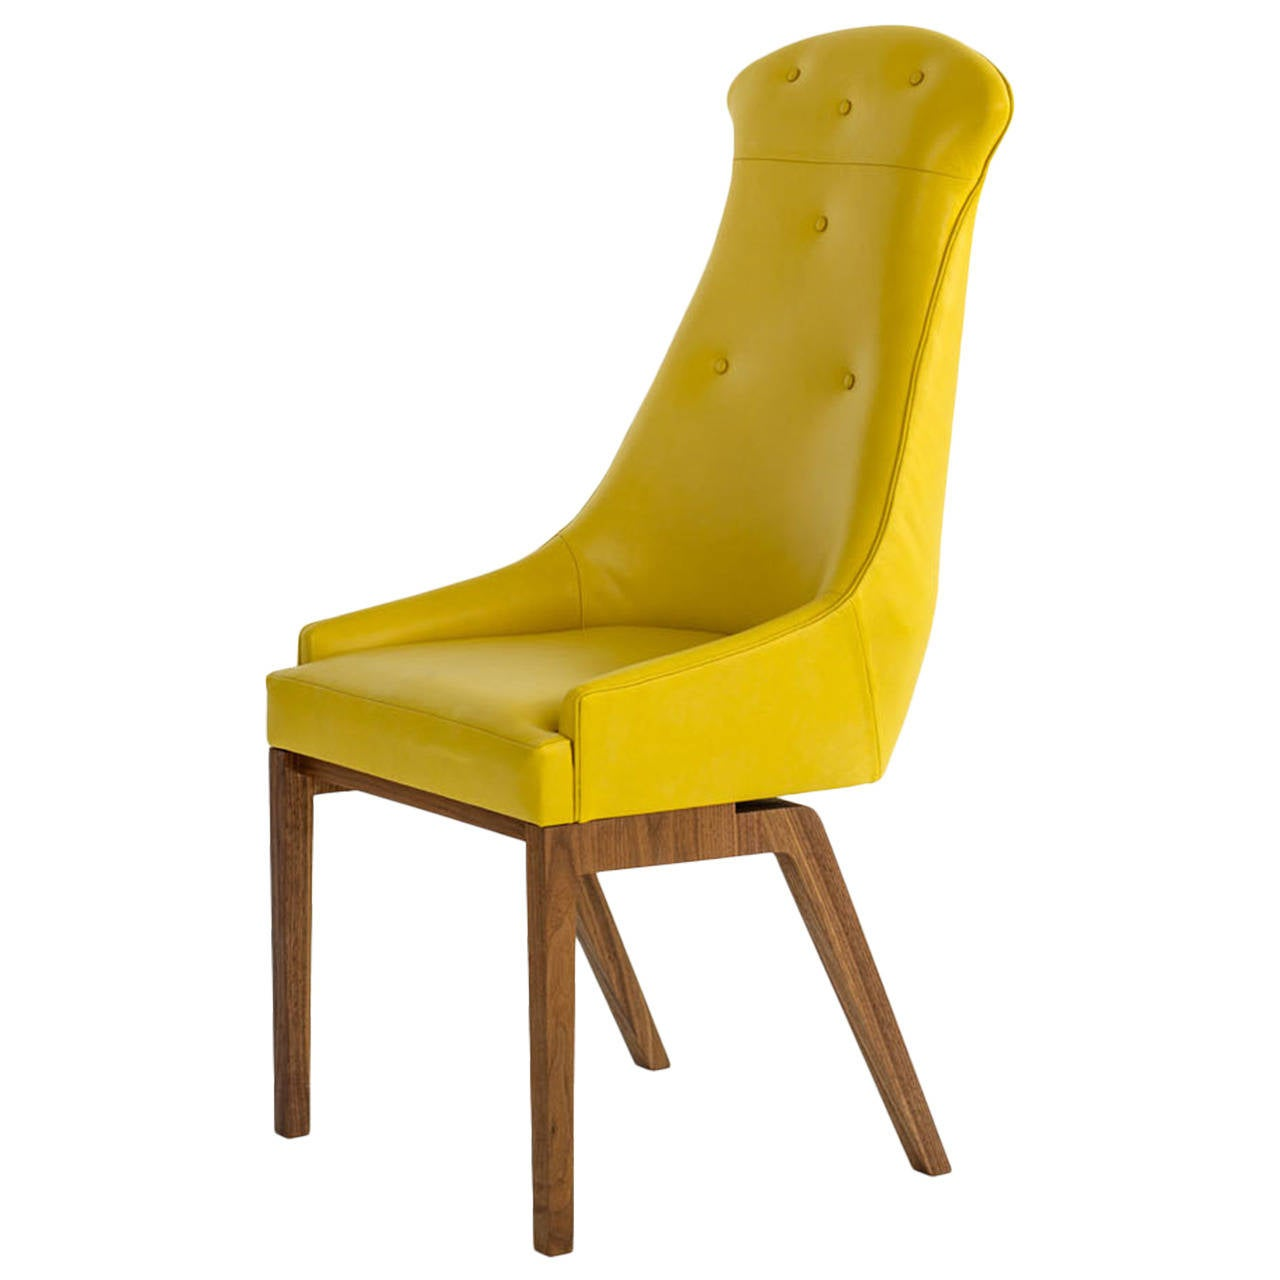 Yellow Chairs Evander Dining Chair In Yellow Wool Bouclé Or Leather With